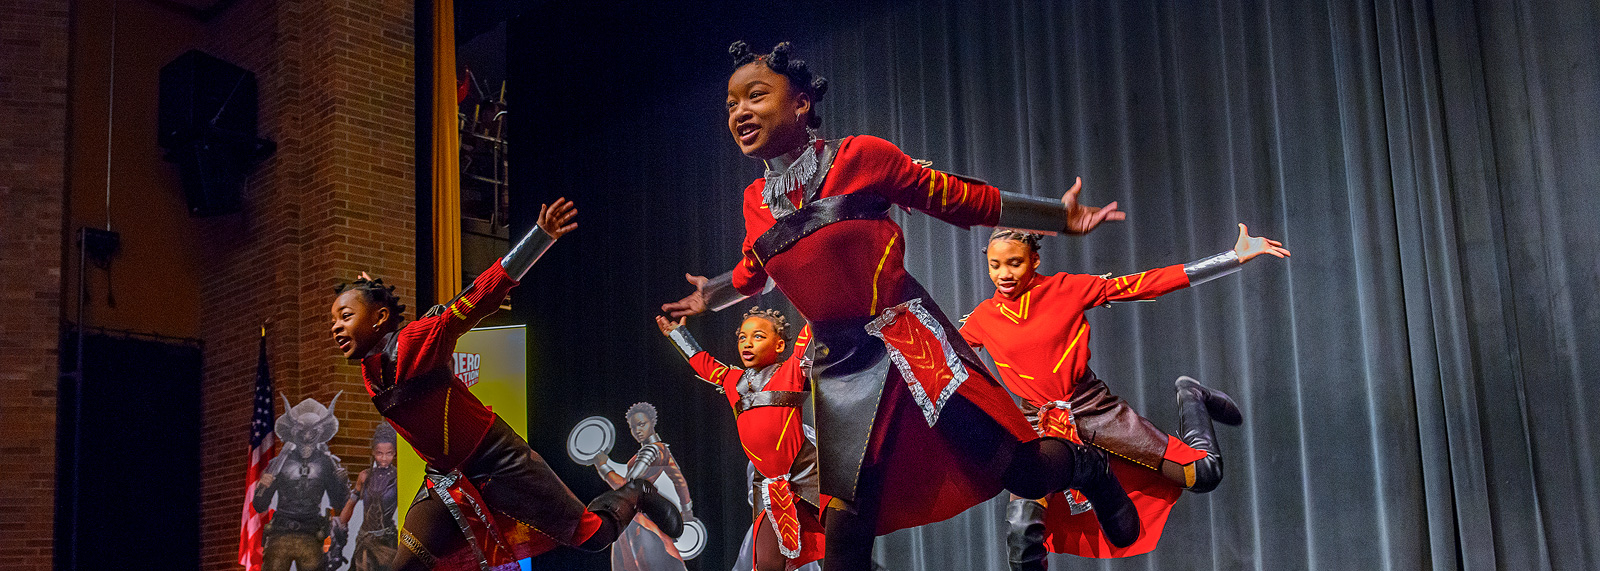 A performance at Ypsilanti Community High School before the class field trip to Black Panther <span class='image-credits'>Doug Coombe</span>